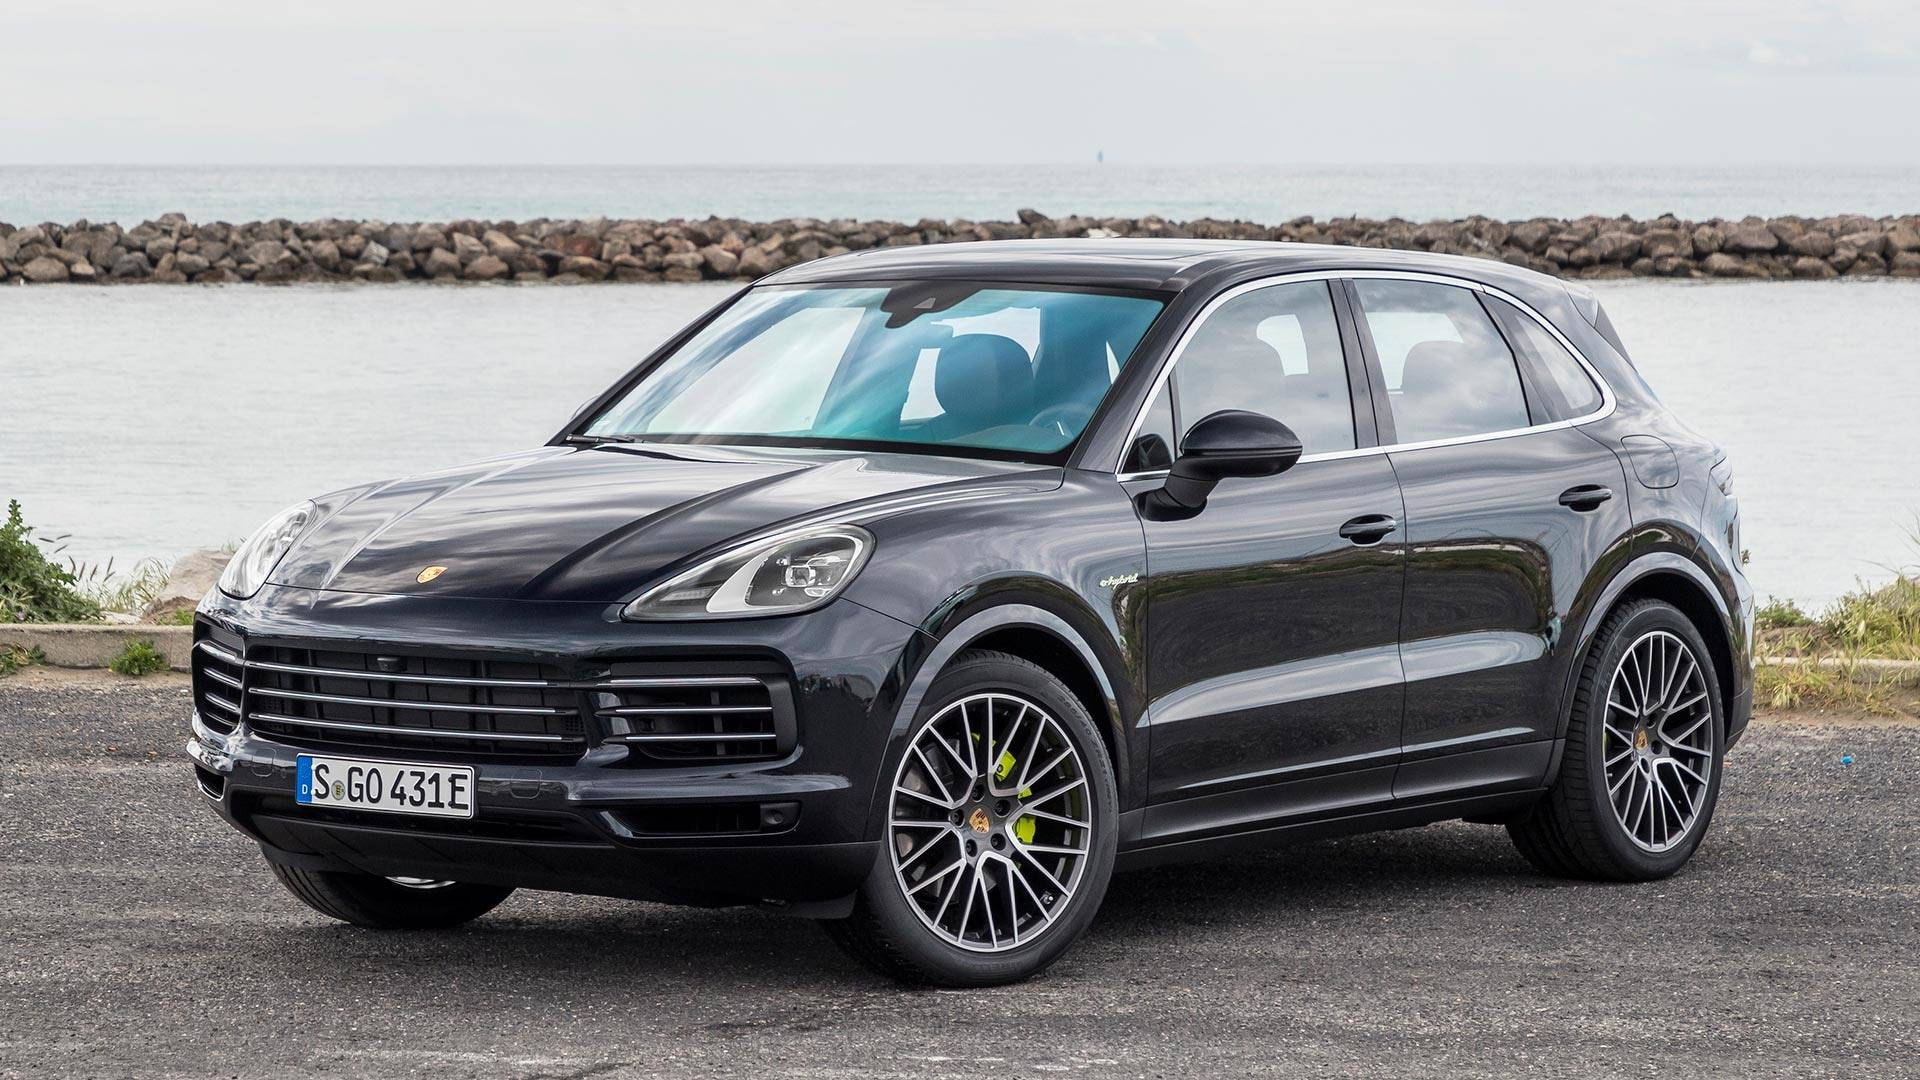 2019 Porsche Cayenne E,Hybrid First Drive Amazing Mainstream